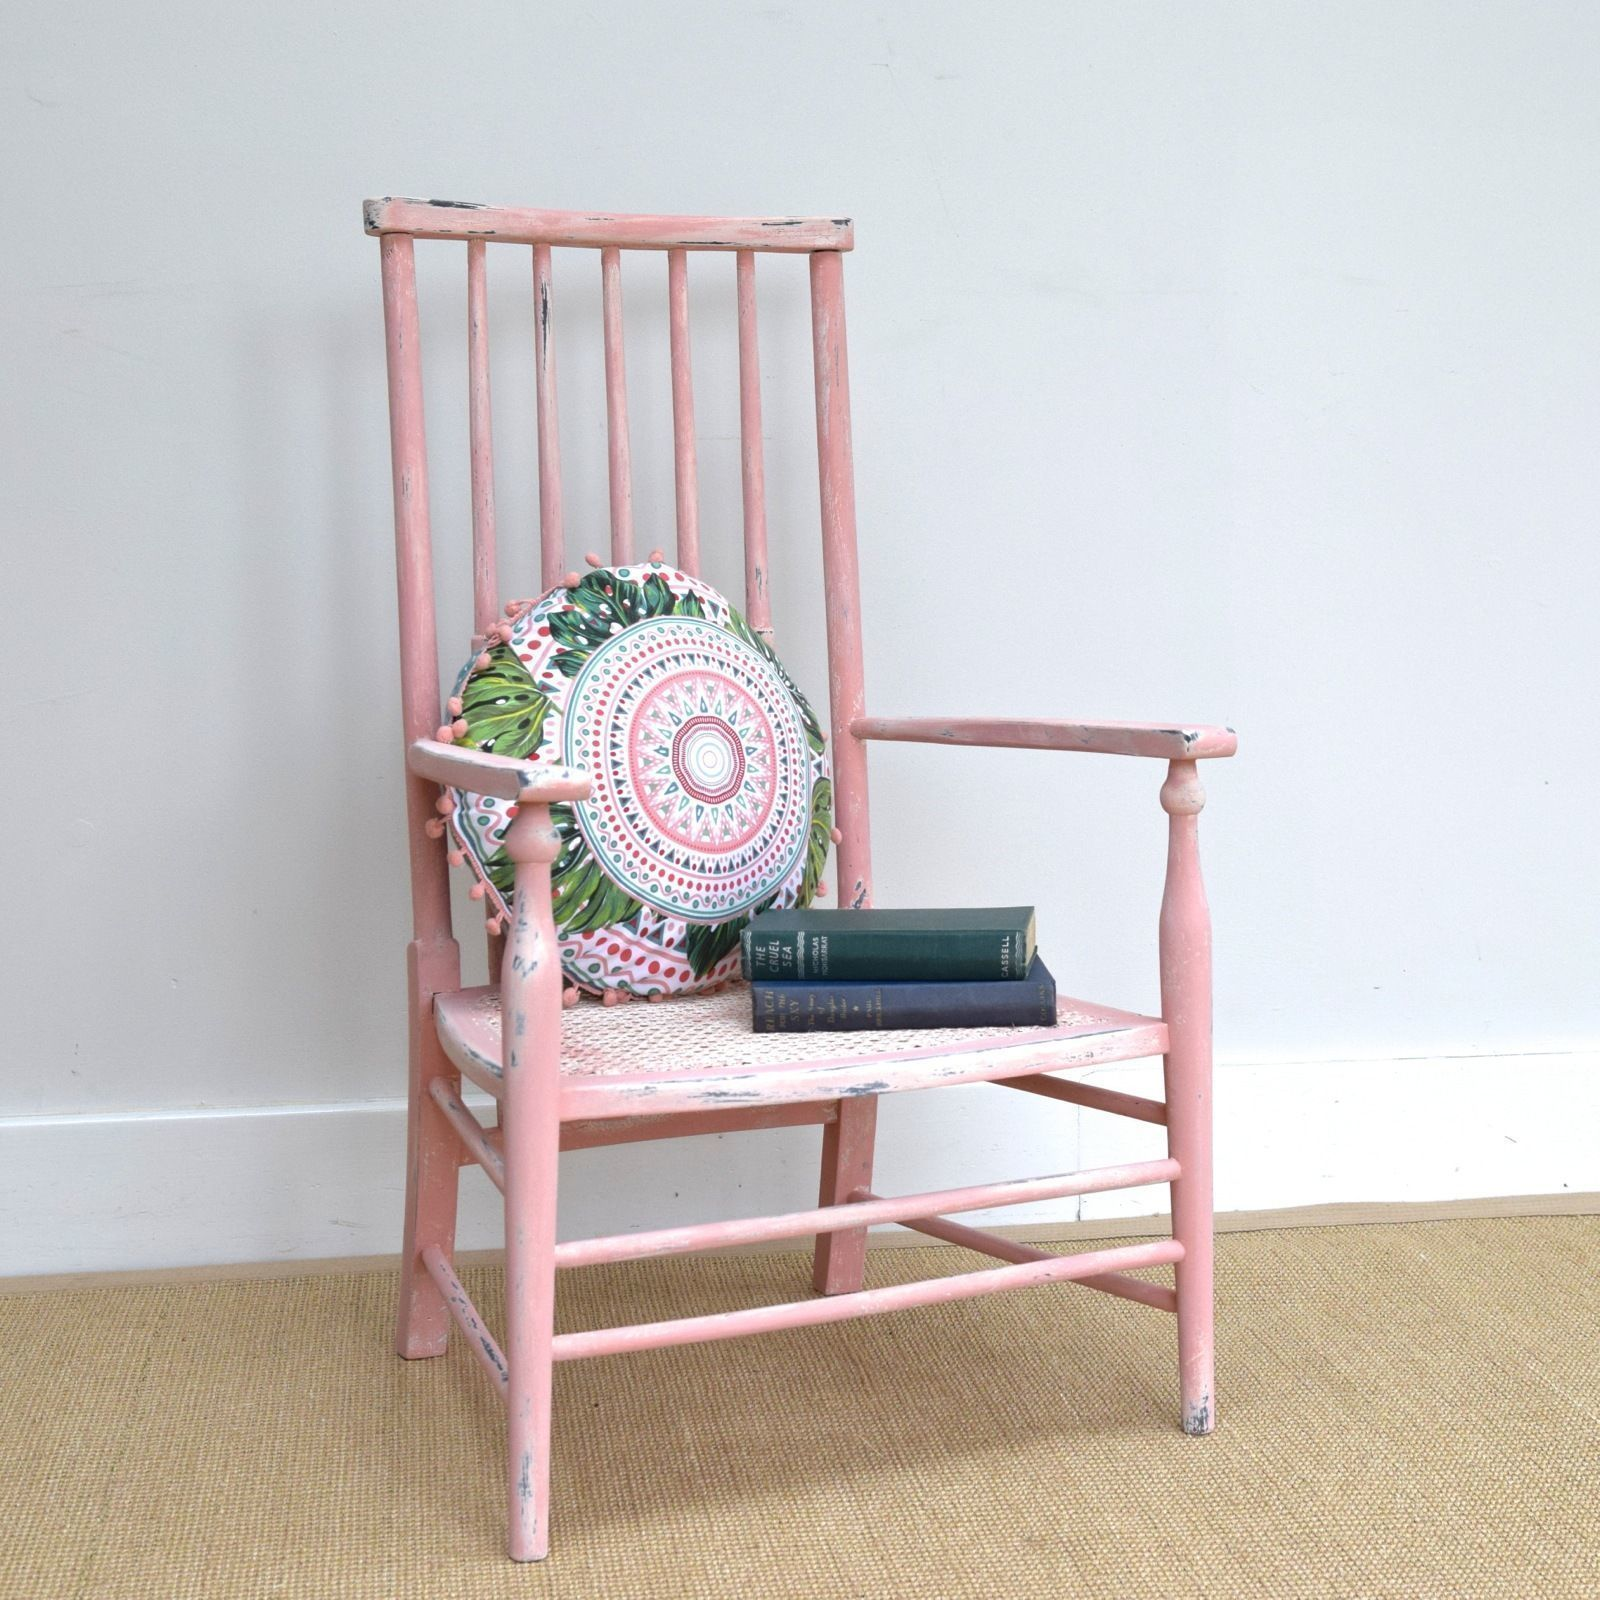 Shabby Chic Vintage Nursery Shabby Chic Antique Nursing Chair Childs Scandi Pink Bedroom Nursery Chair Seat